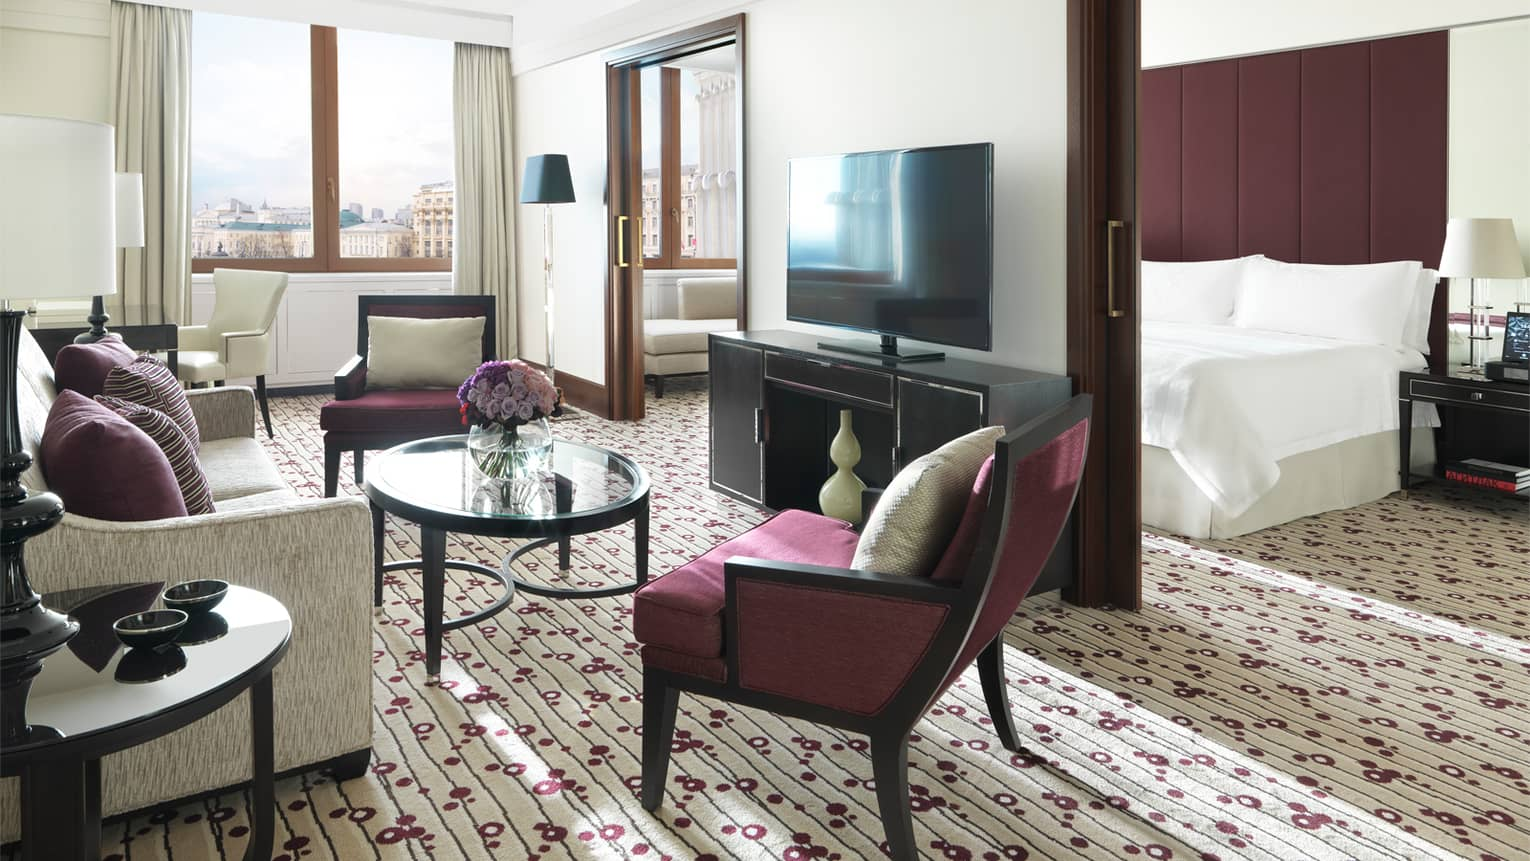 Executive Suite living area with burgundy accent chairs, flowers in glass vase, flat-screen TV on wall concealing bed